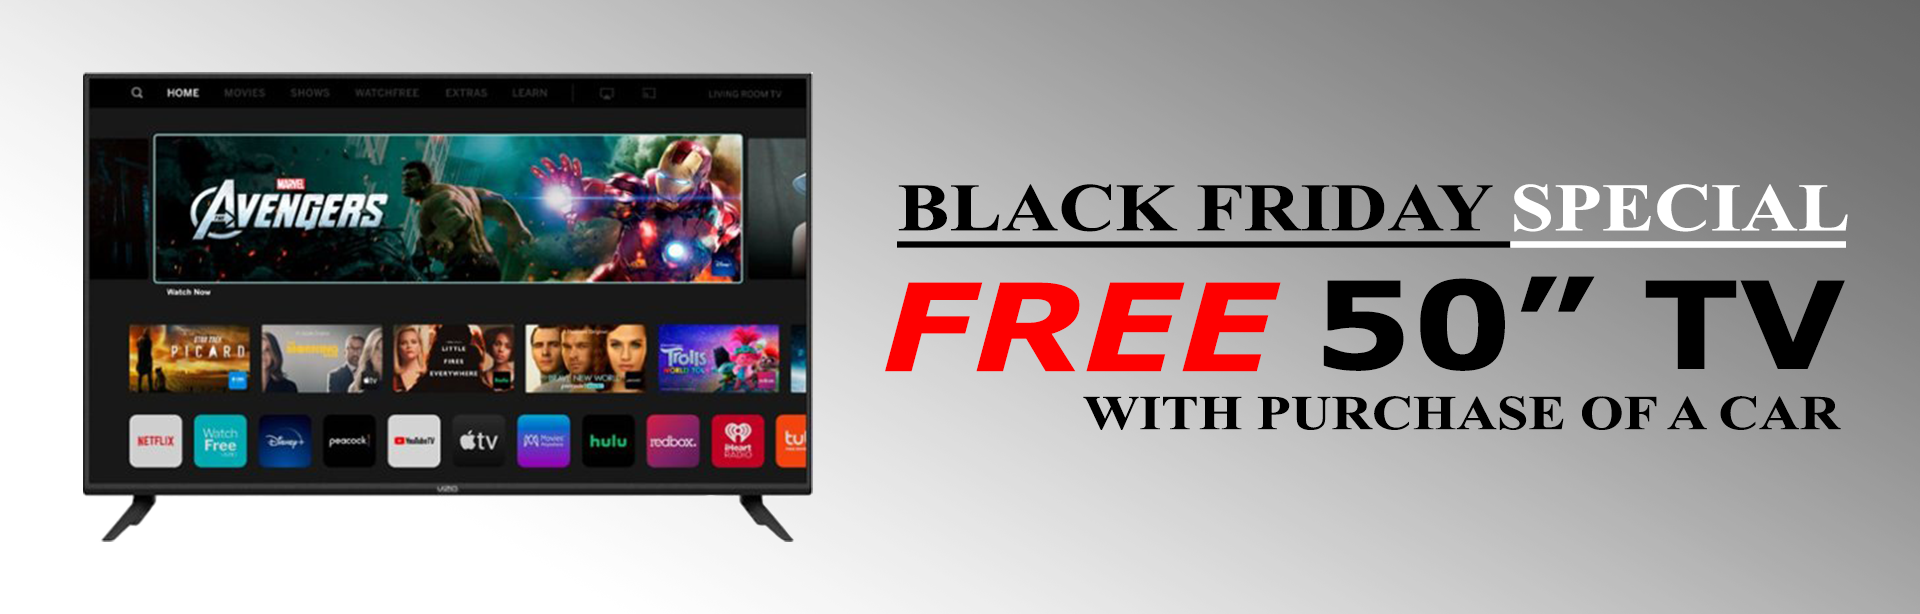 black friday free tv offer auto expo houston